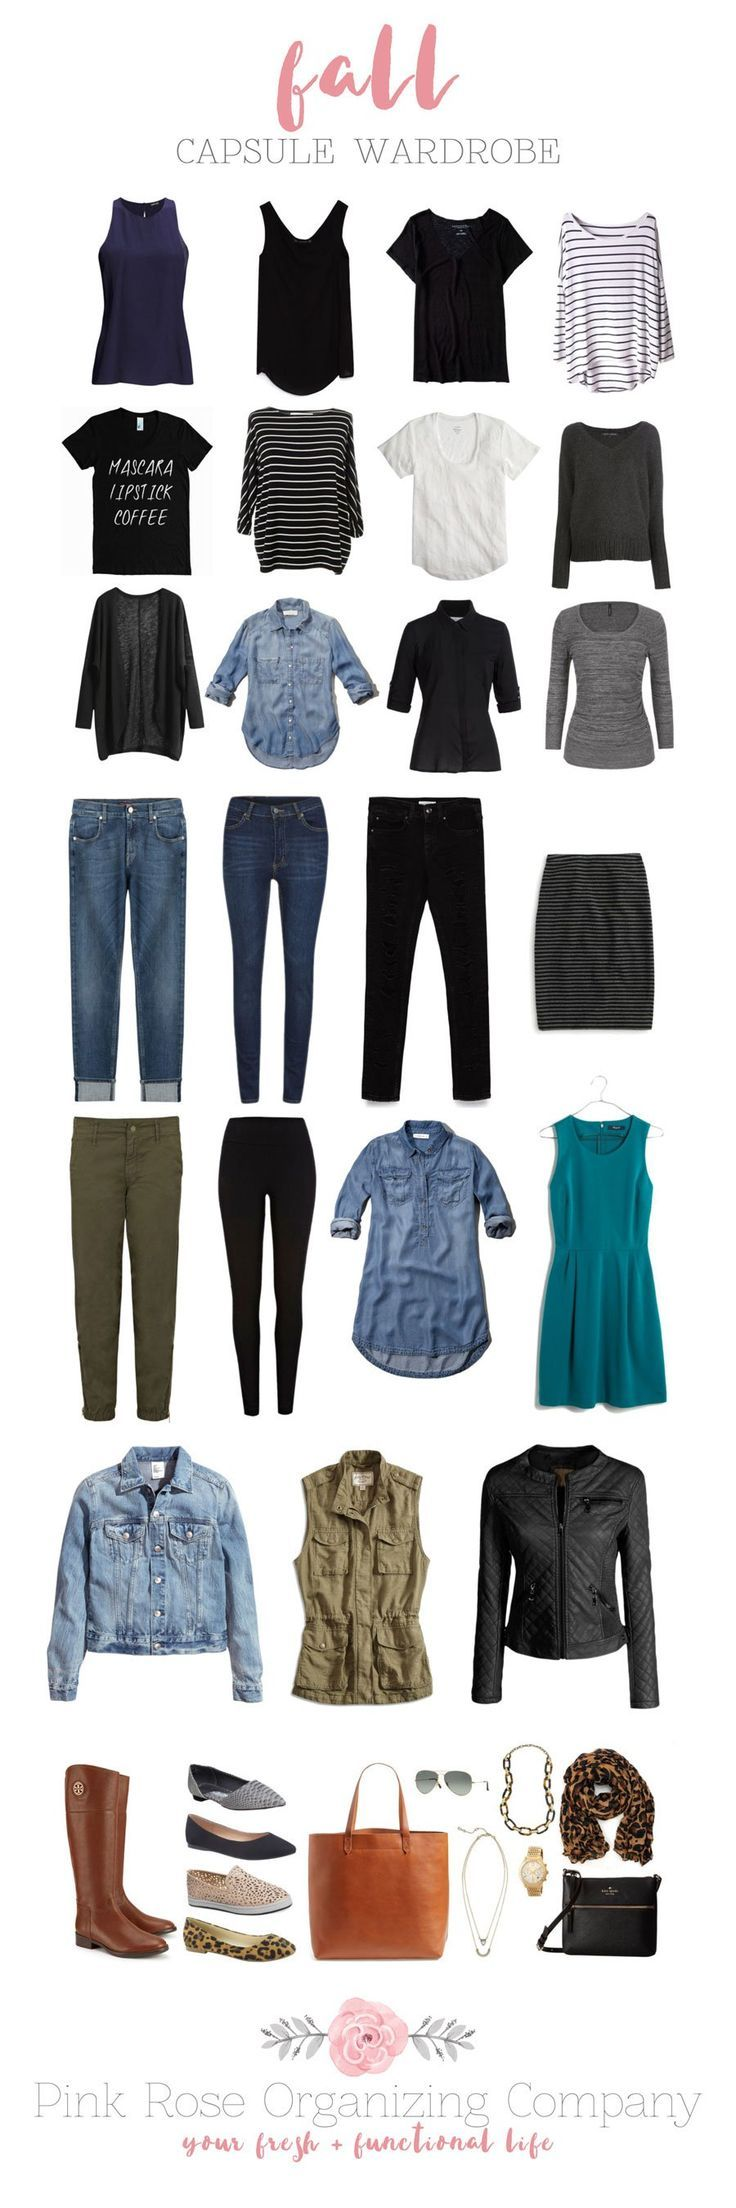 415 Best Capsule Wardrobes Images On Pinterest